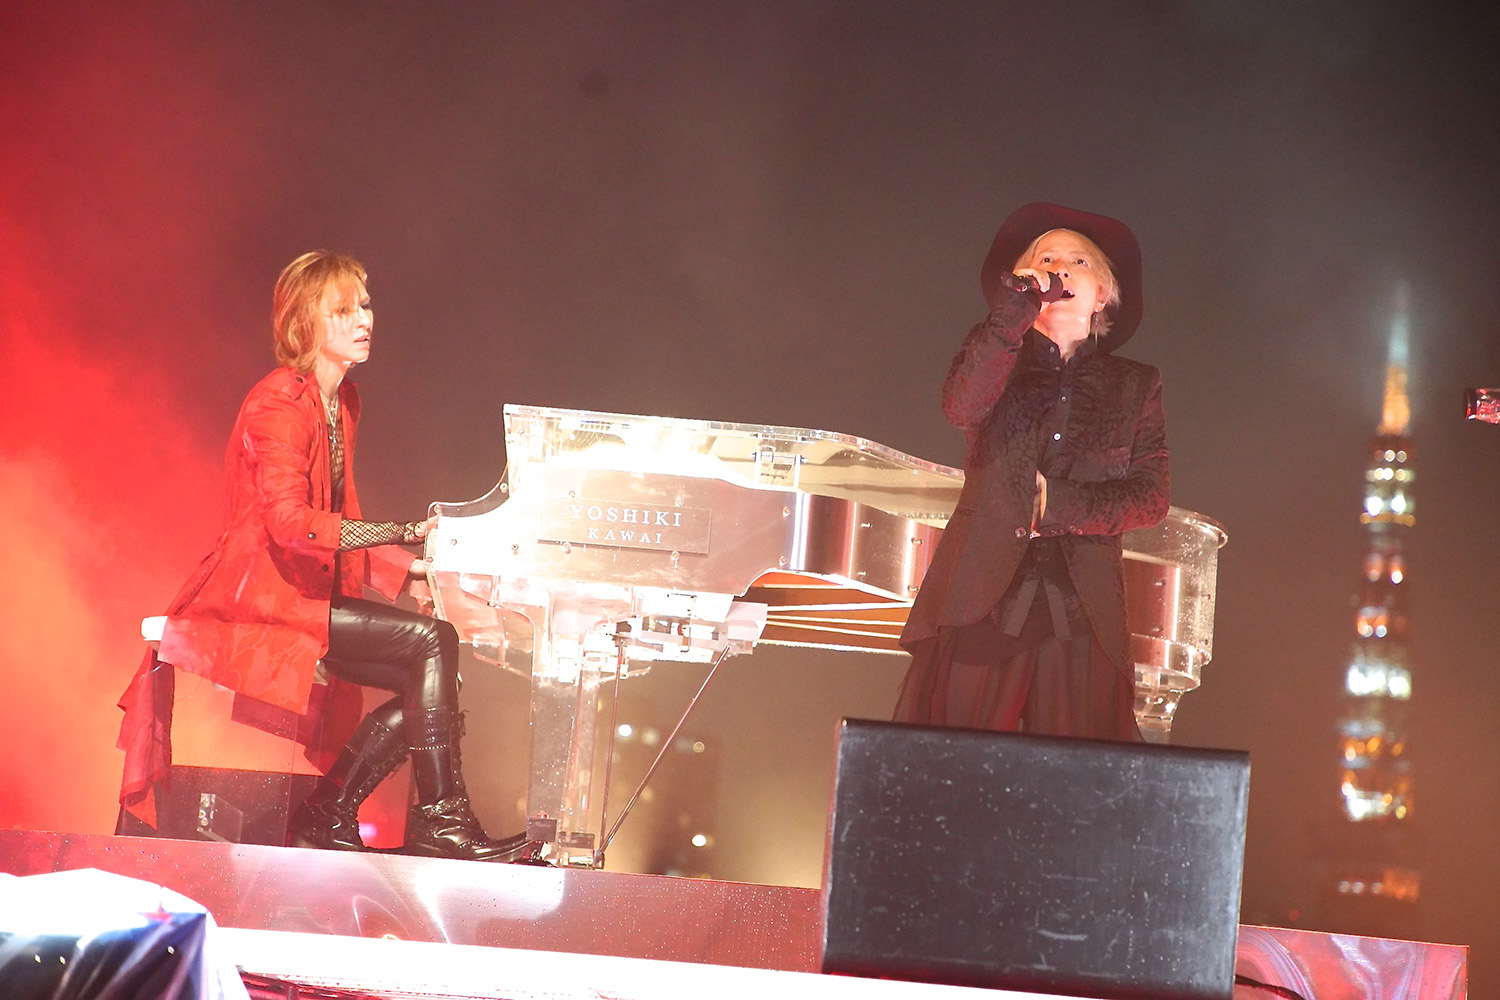 RMMS-Yoshiki-Hyde-Red-Swan-Music-Station-20180917-D4740